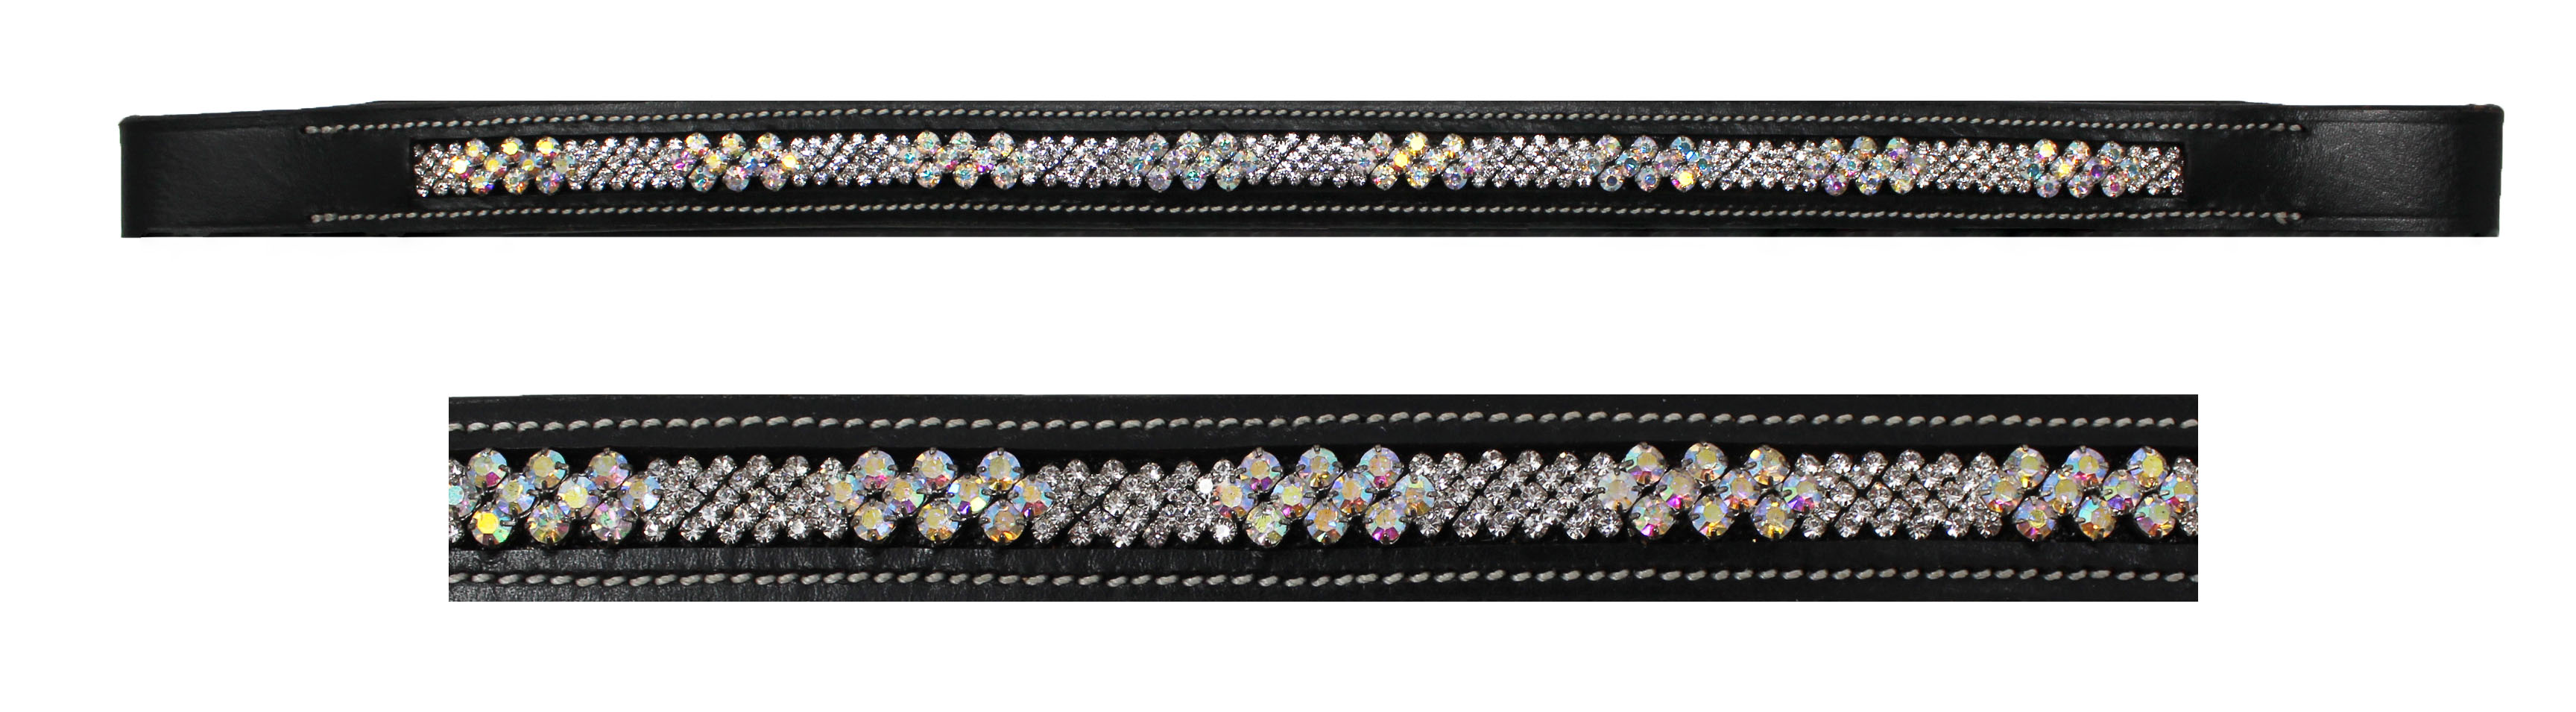 HIGH QUALITY GENUINE EMPTY CHANNEL BLACK  LEATHER BROWBAND Size All Discount 5/%